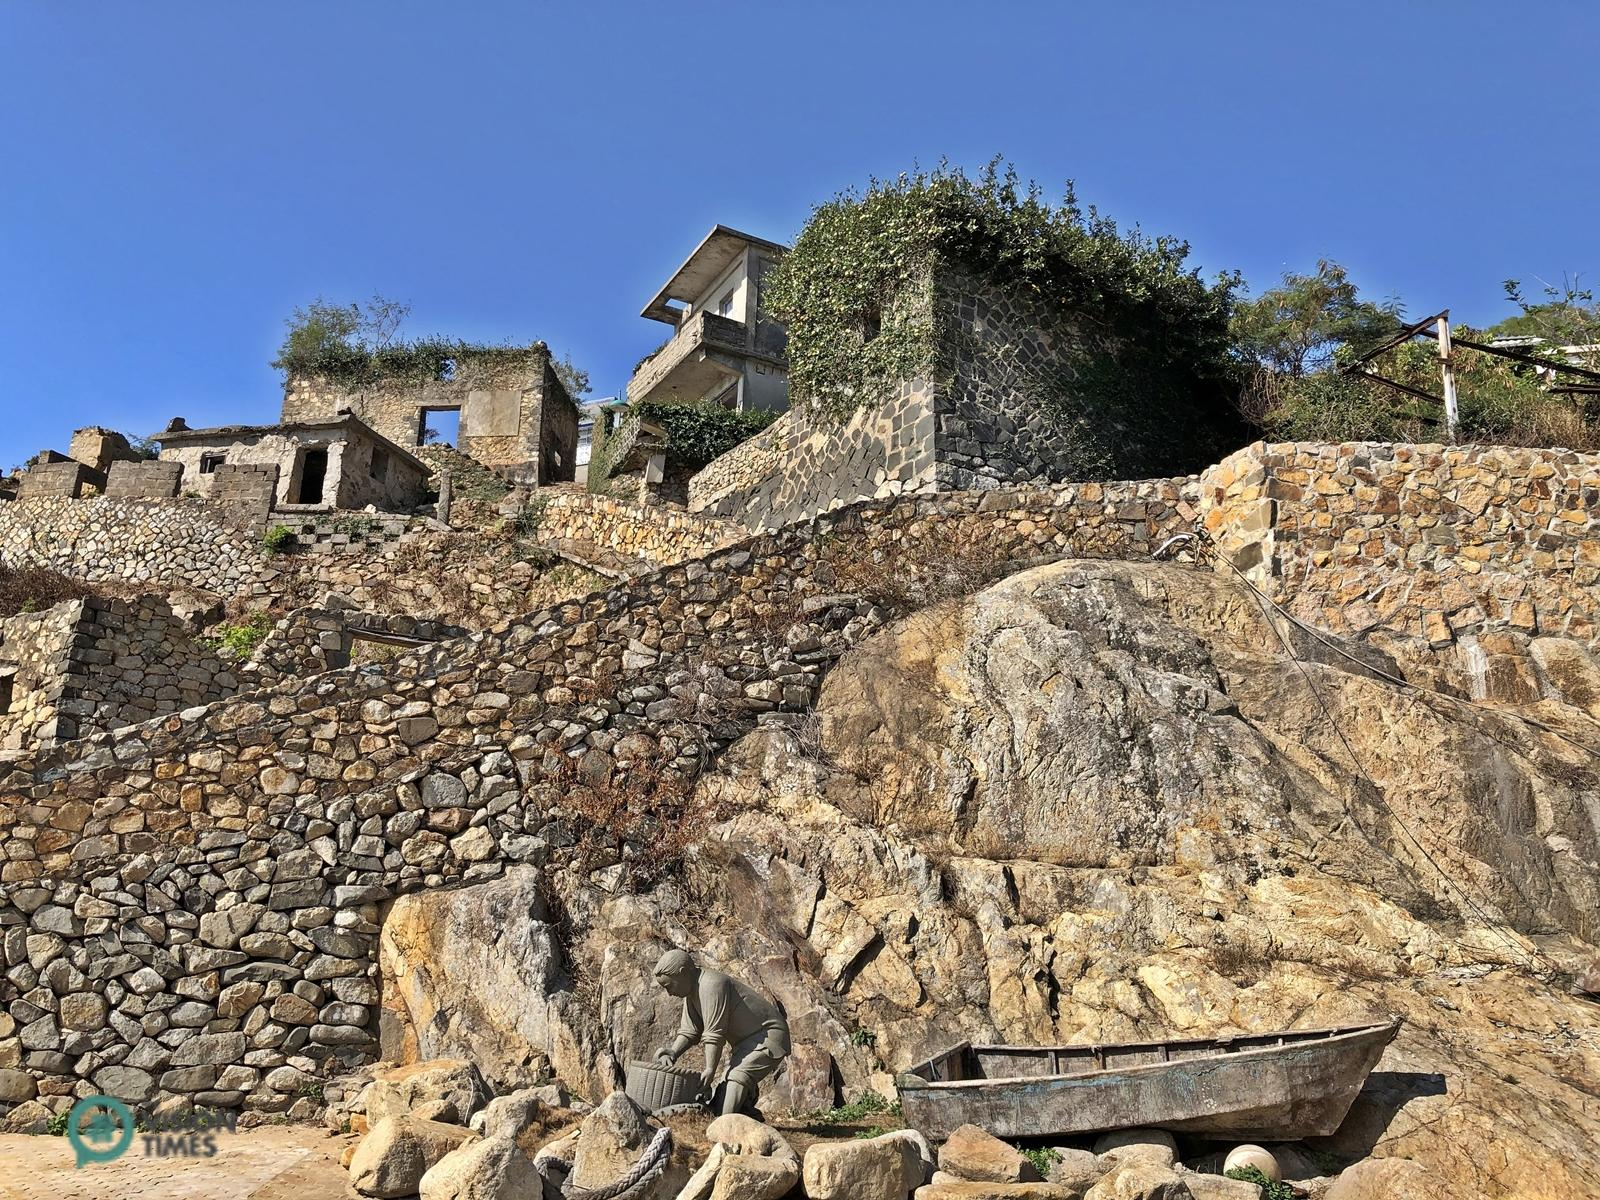 There are still many abandoned stone houses in Jinsha Village. (Image: Billy Shyu / Vision Times)